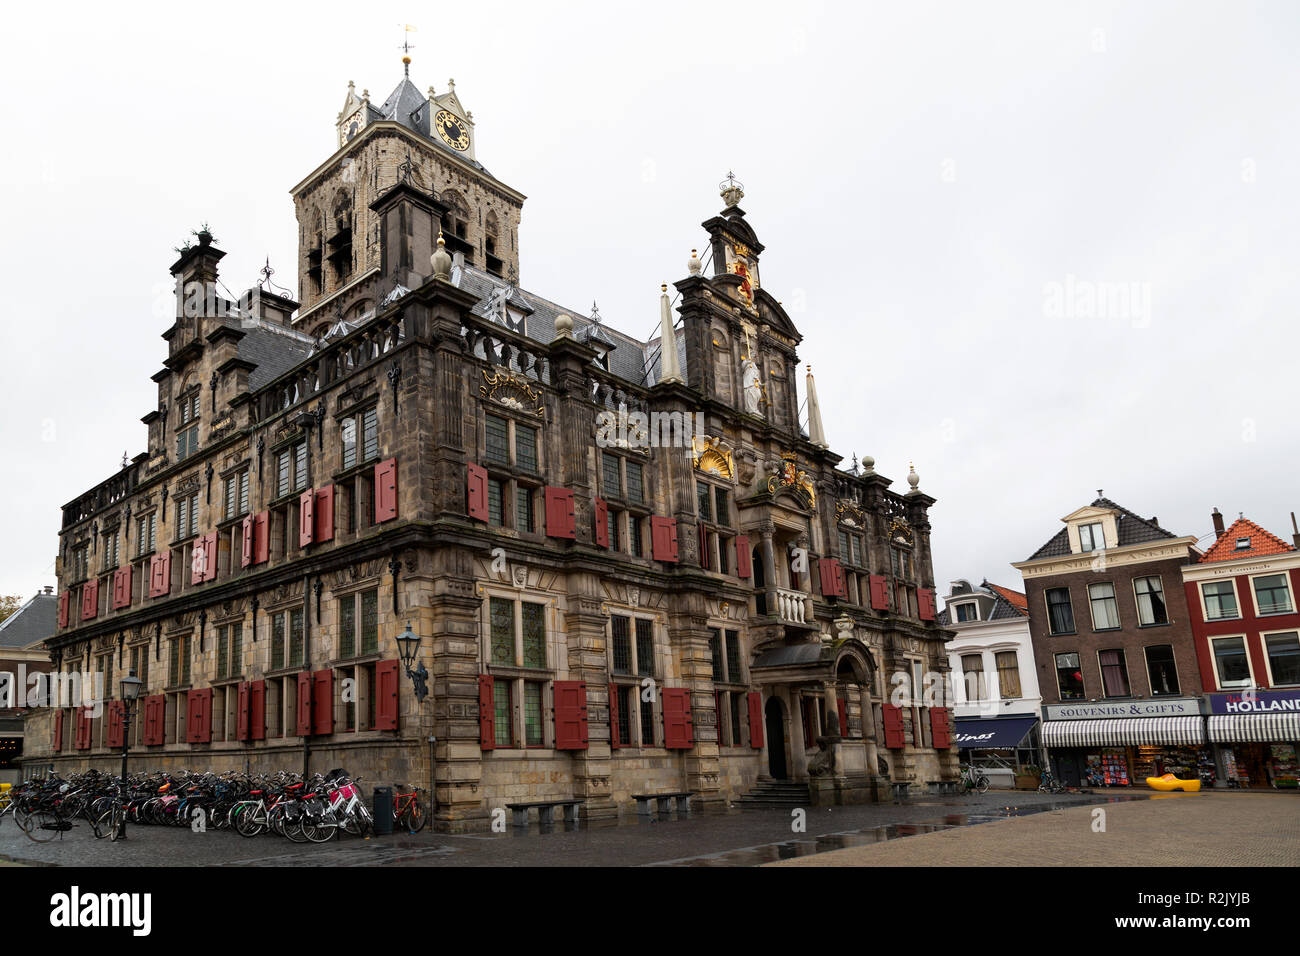 The City Hall (Stadhuis) in Delft, the Netherlands. The building is an example of Dutch Renaissance style architecture. - Stock Image